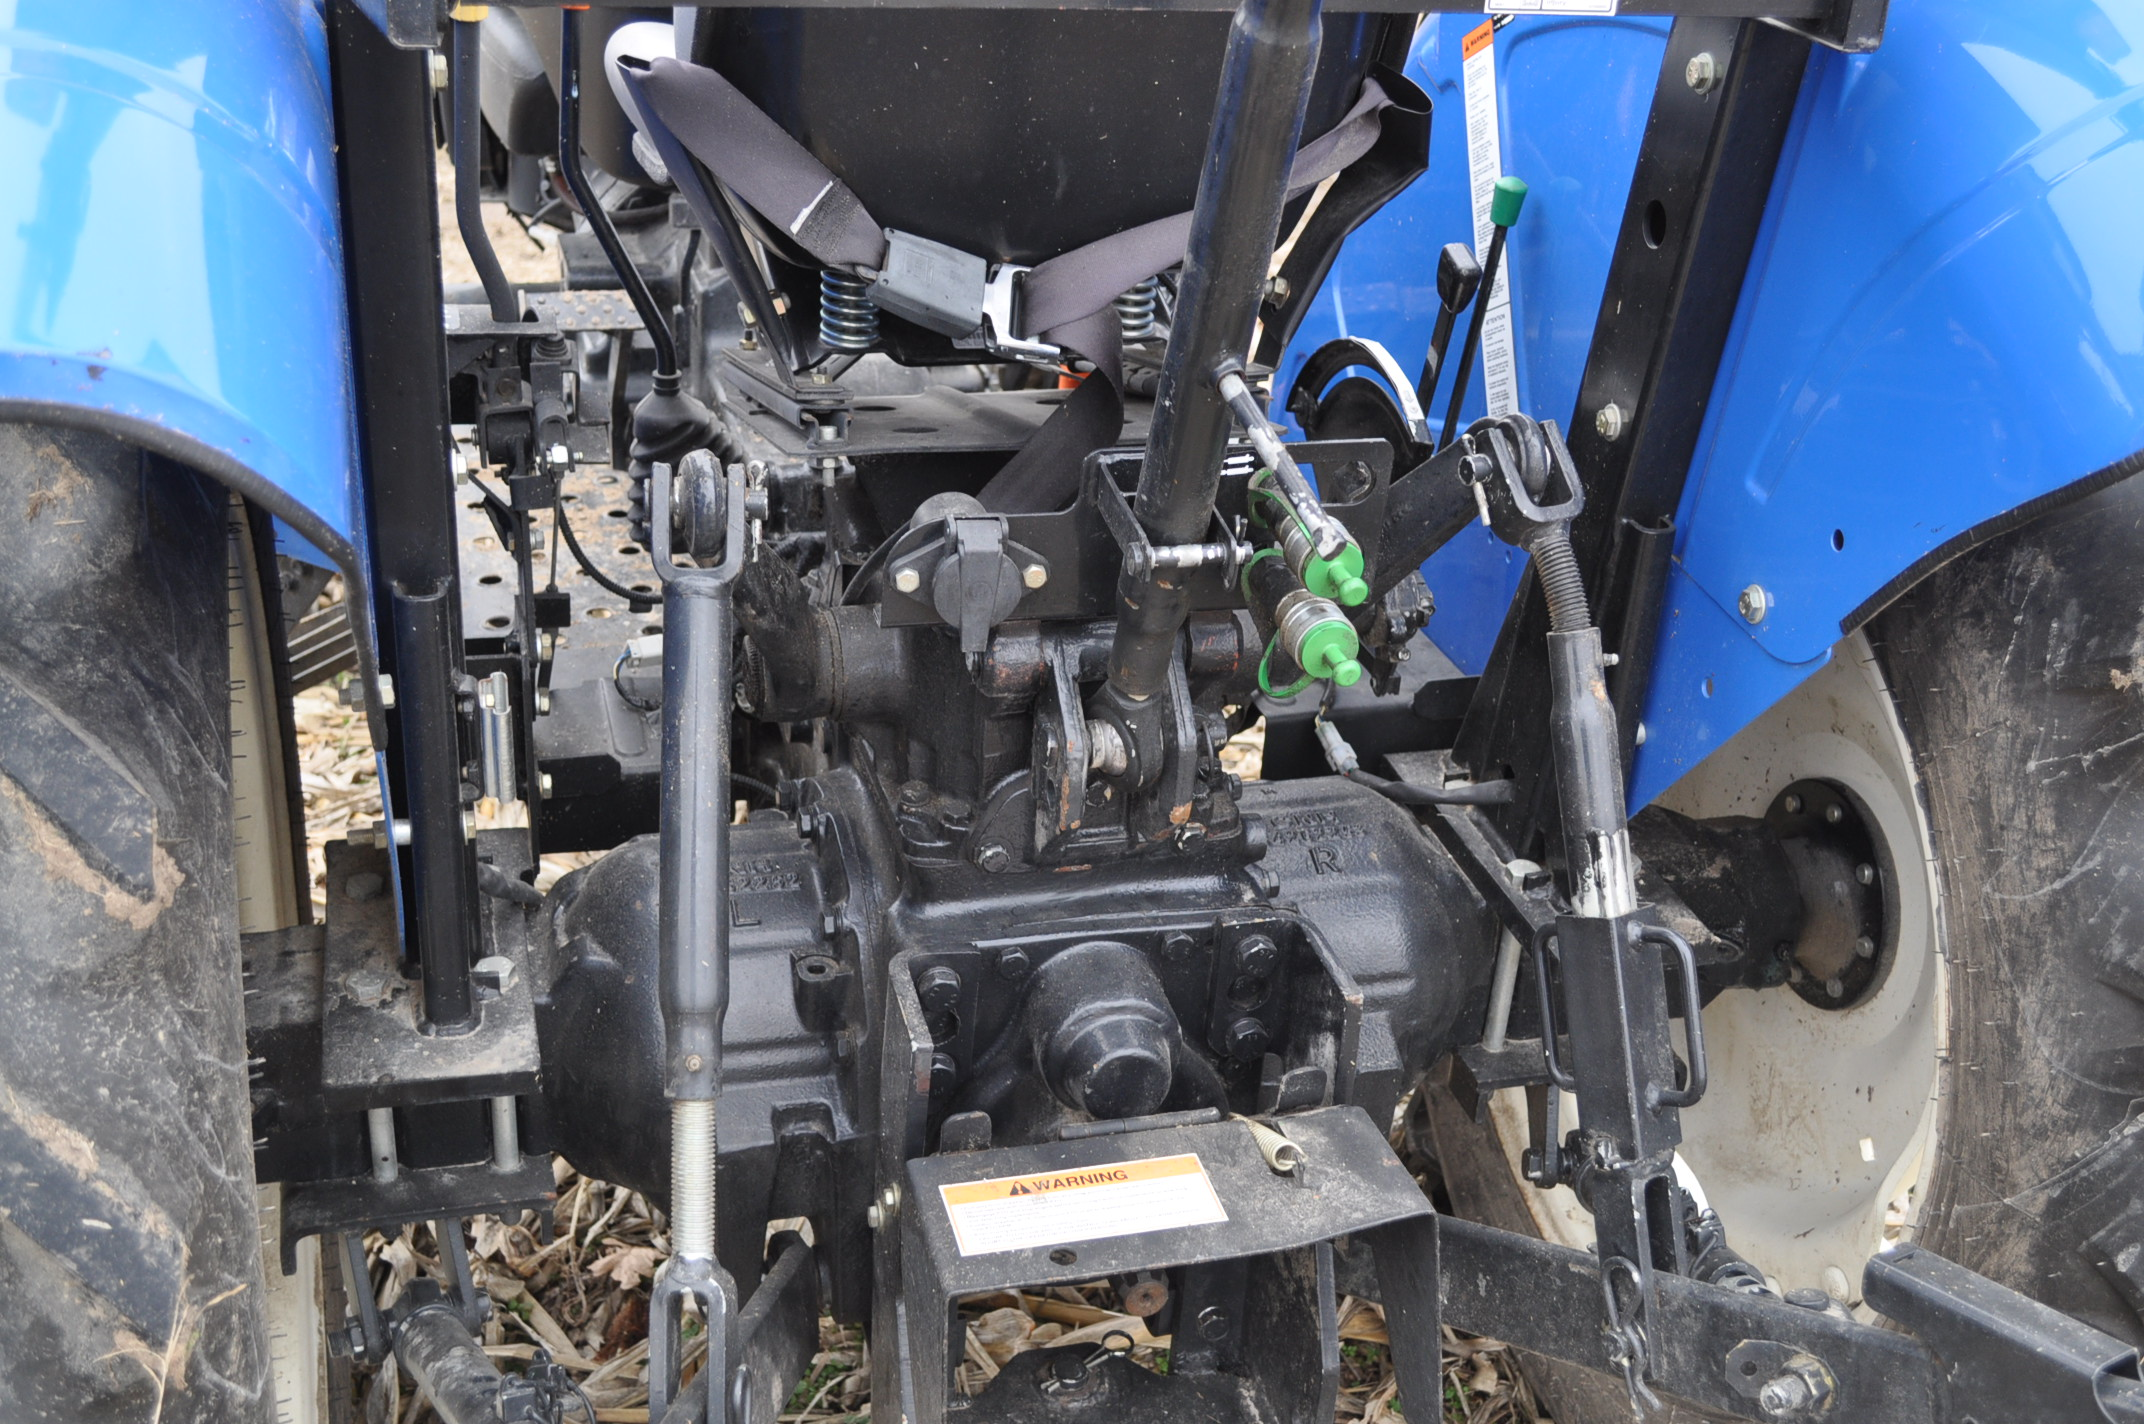 New Holland Workmaster 45 tractor, front wts, 12.4/11-28 rear, 6.00-16 front, shuttle shift, diesel, - Image 10 of 14